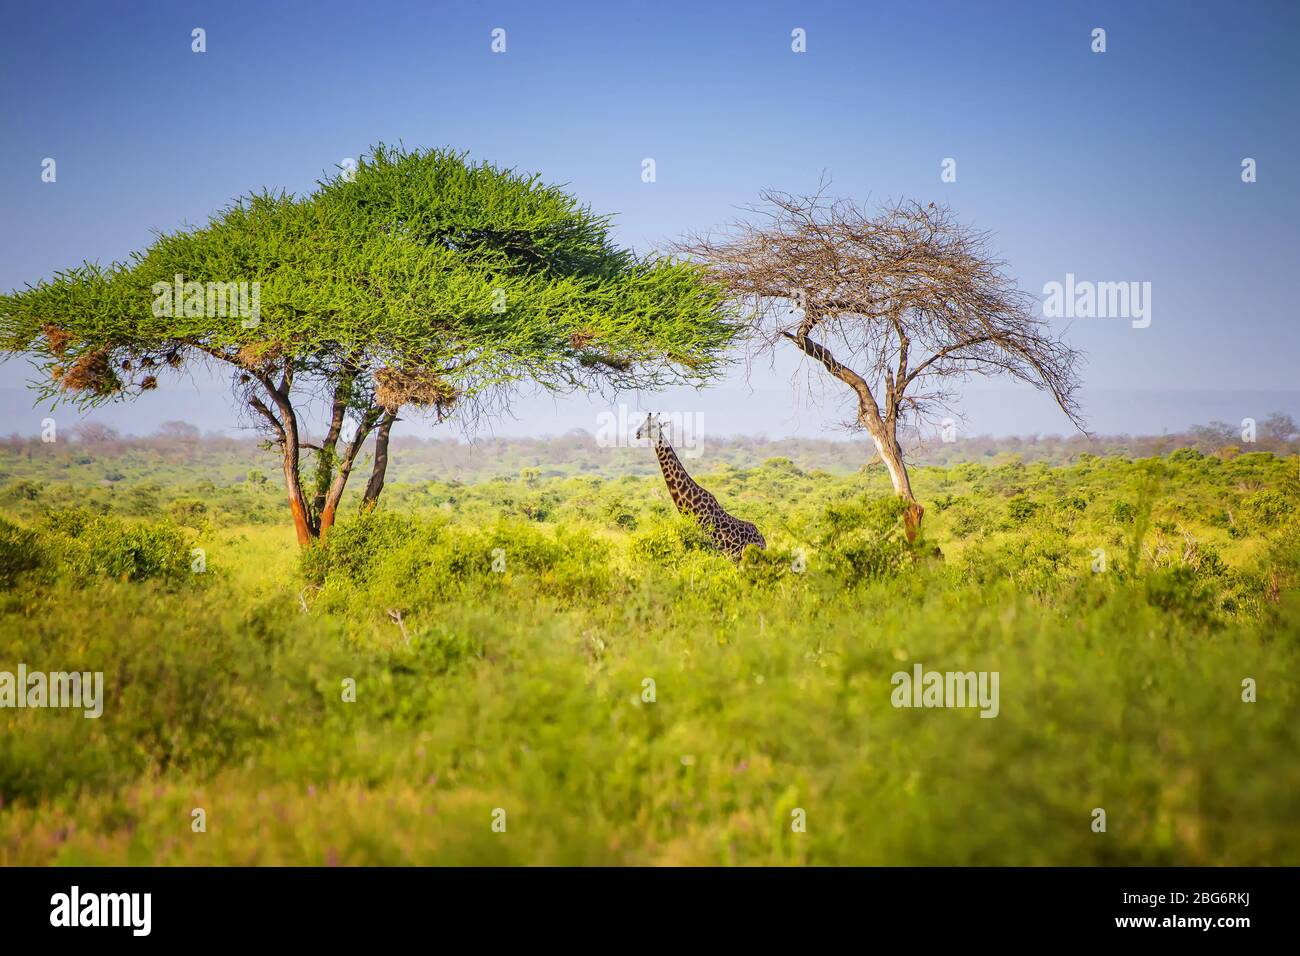 Giraffe standing in tall grass in Tsavo East National Park, Kenya. Hiding in the shade under high trees. It is a wild life photo. Stock Photo